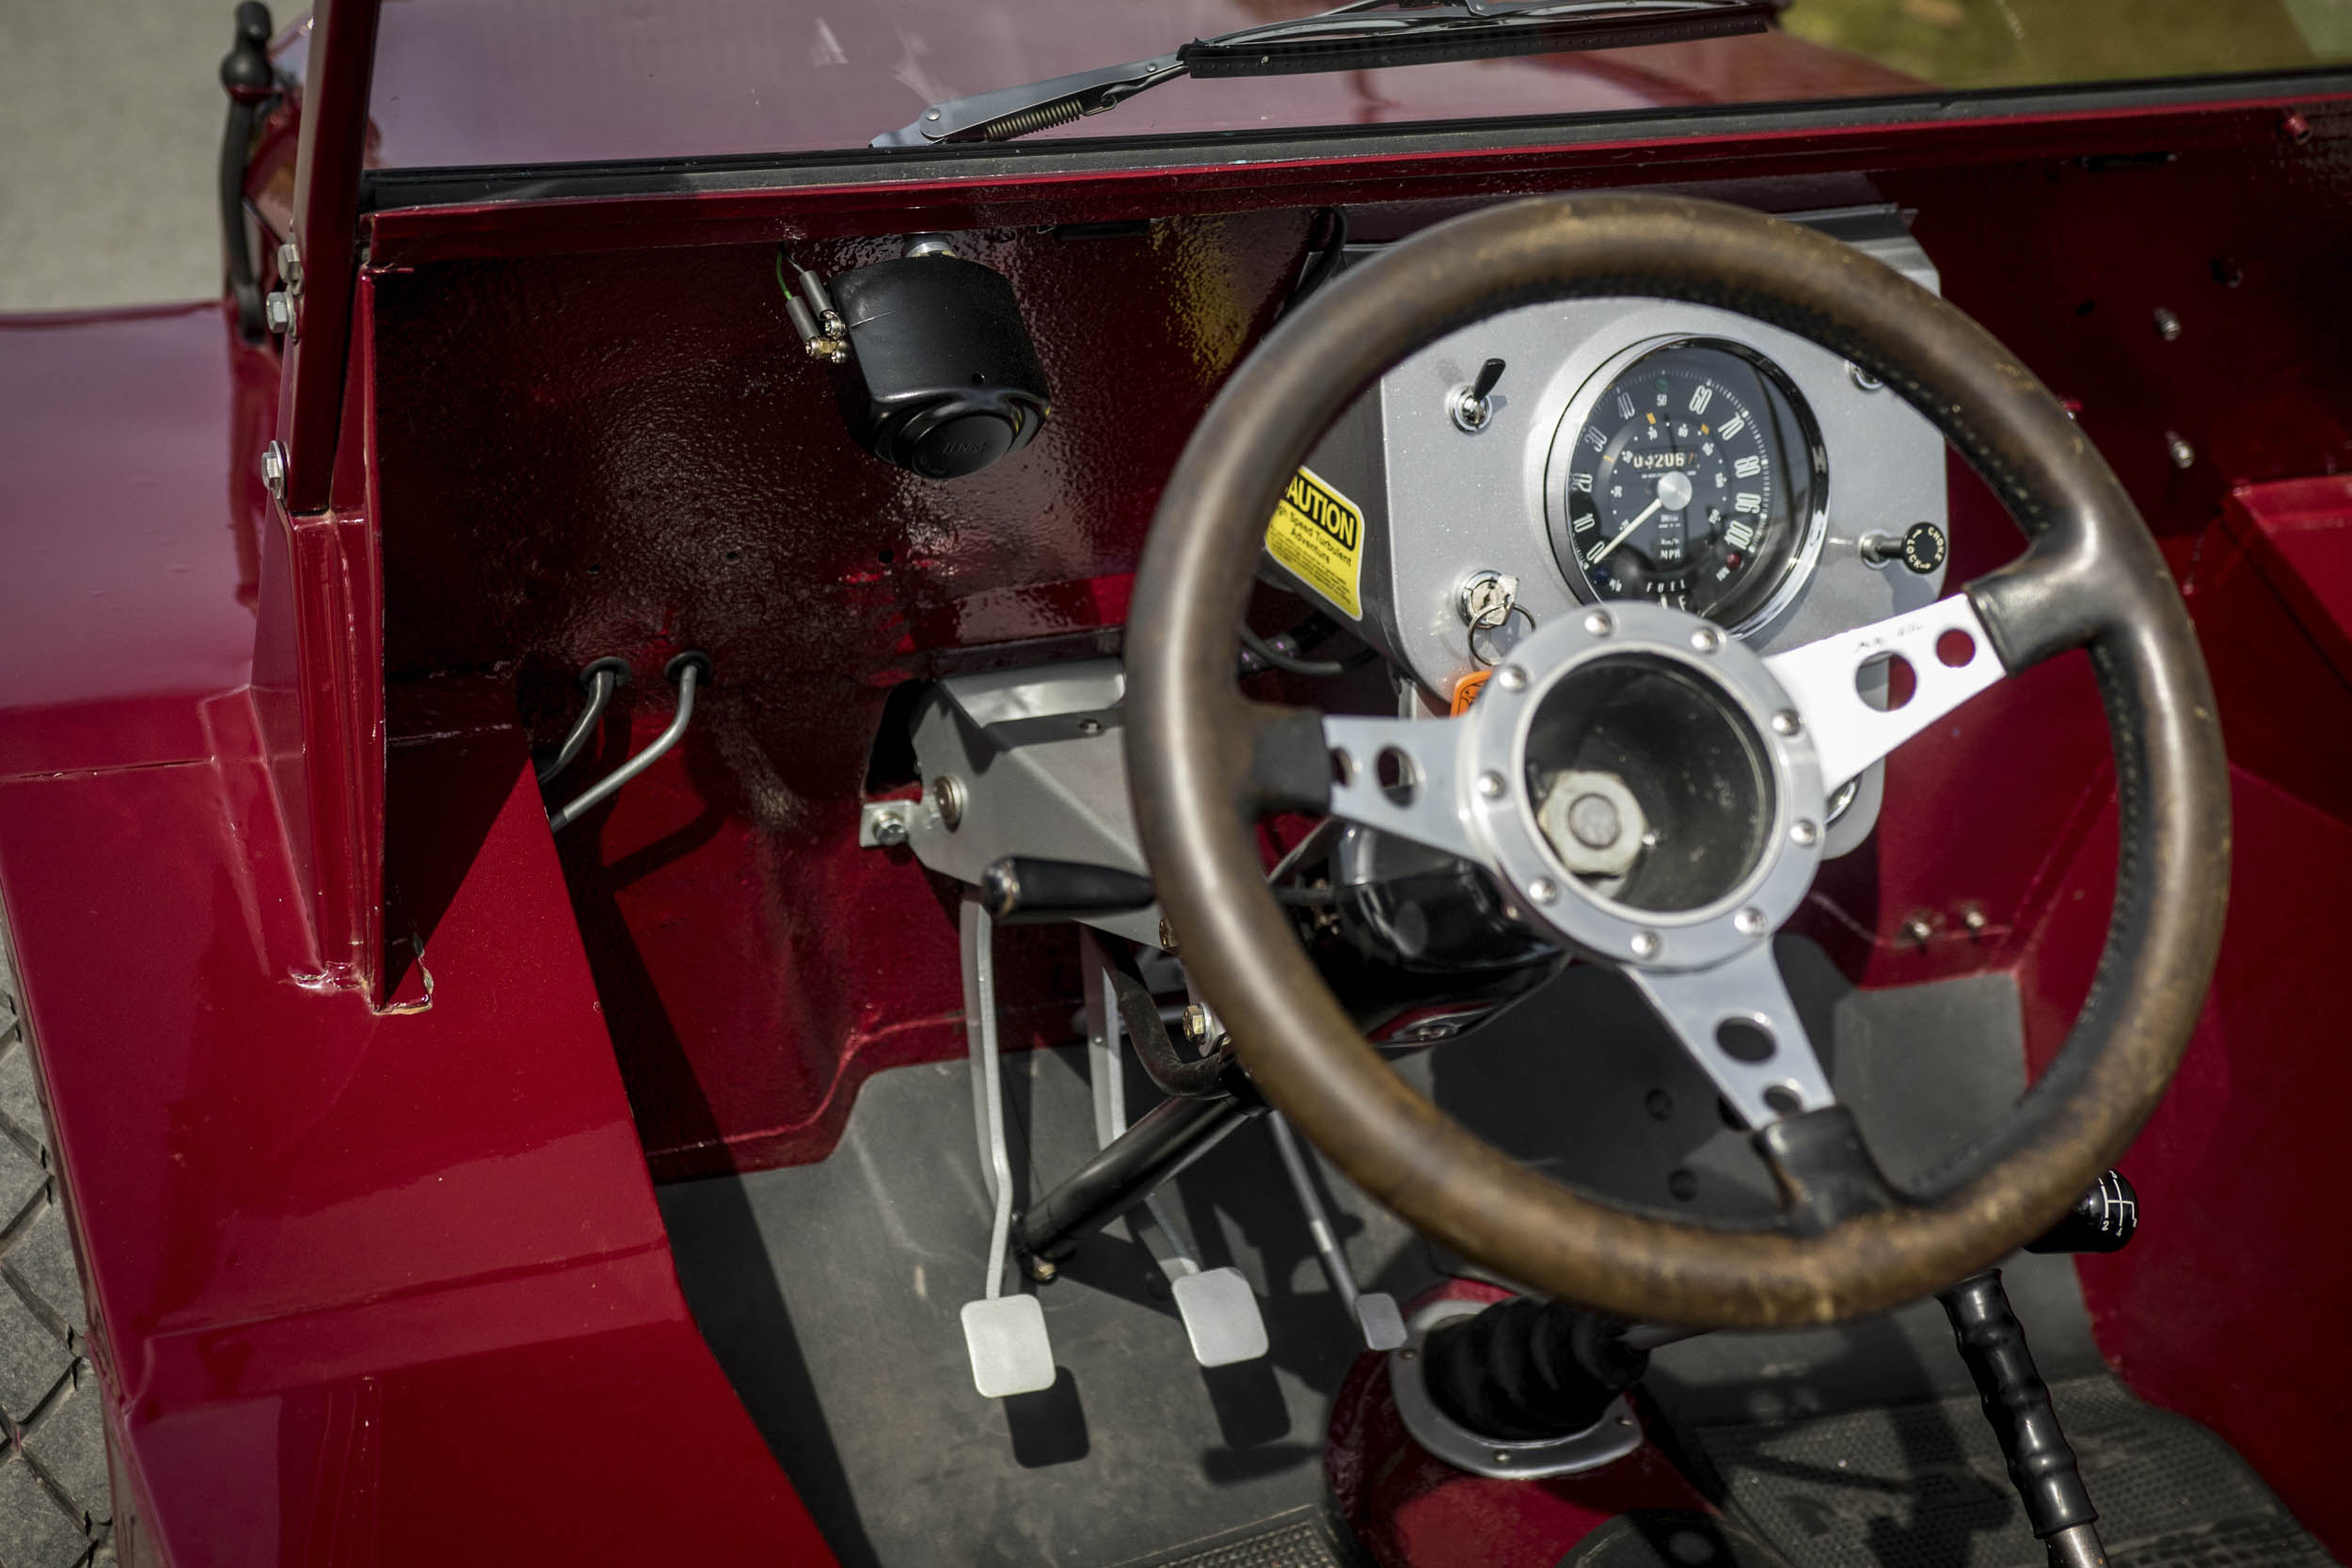 Even simpler than the Mini, everything's on display in a Moke. Driving one has you hunching over like a chimpanzee, but it is endless fun.